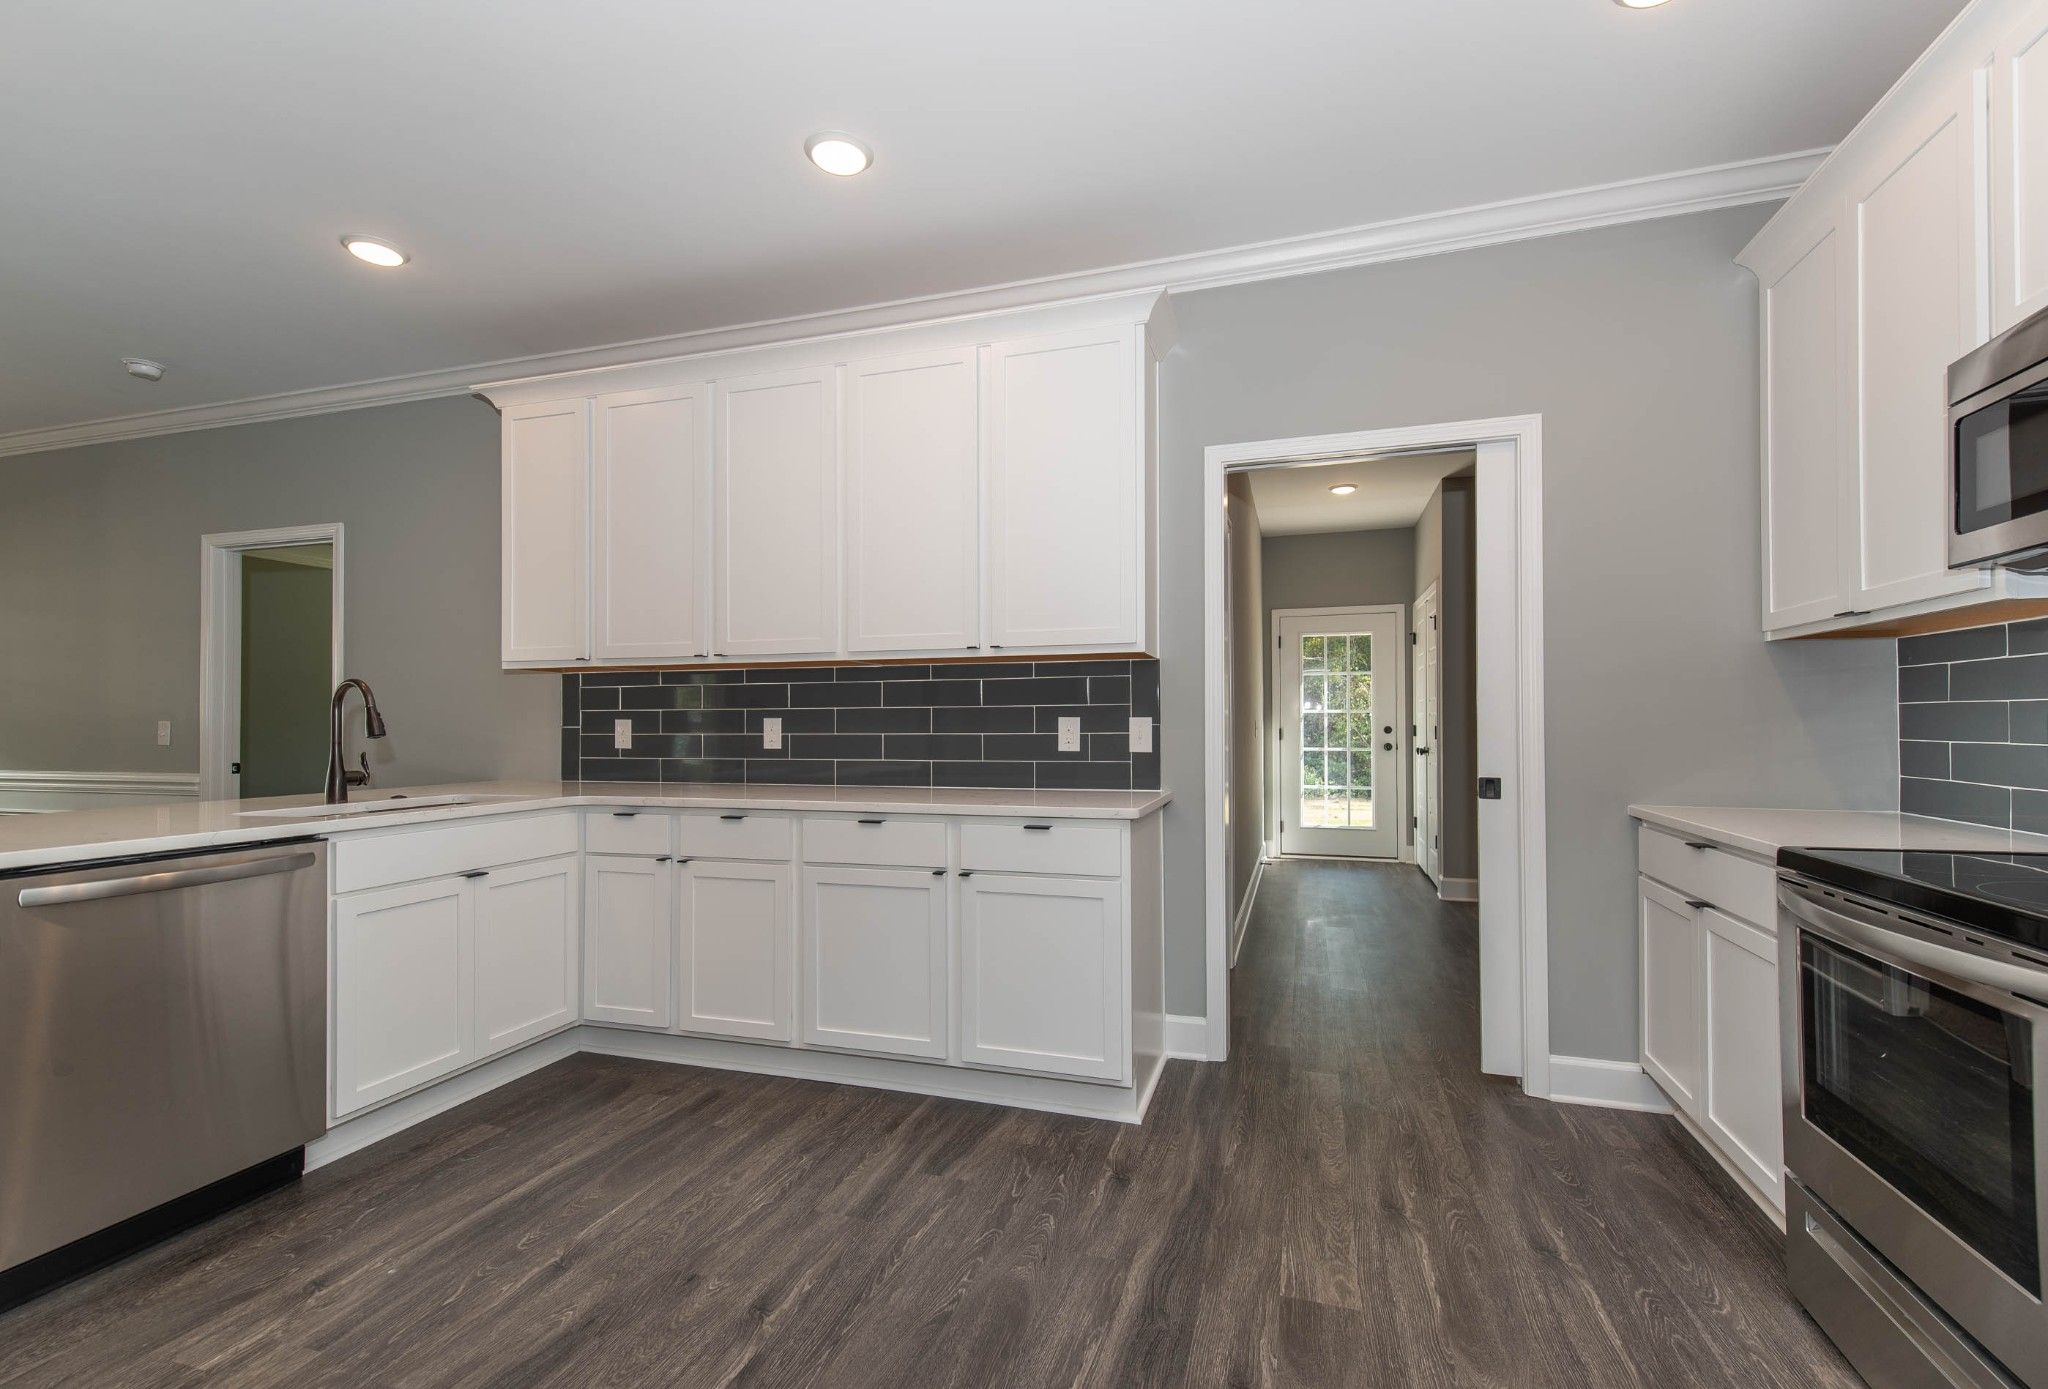 Kitchen featured in the Hatteras Signature By Ernest Homes in Savannah, GA